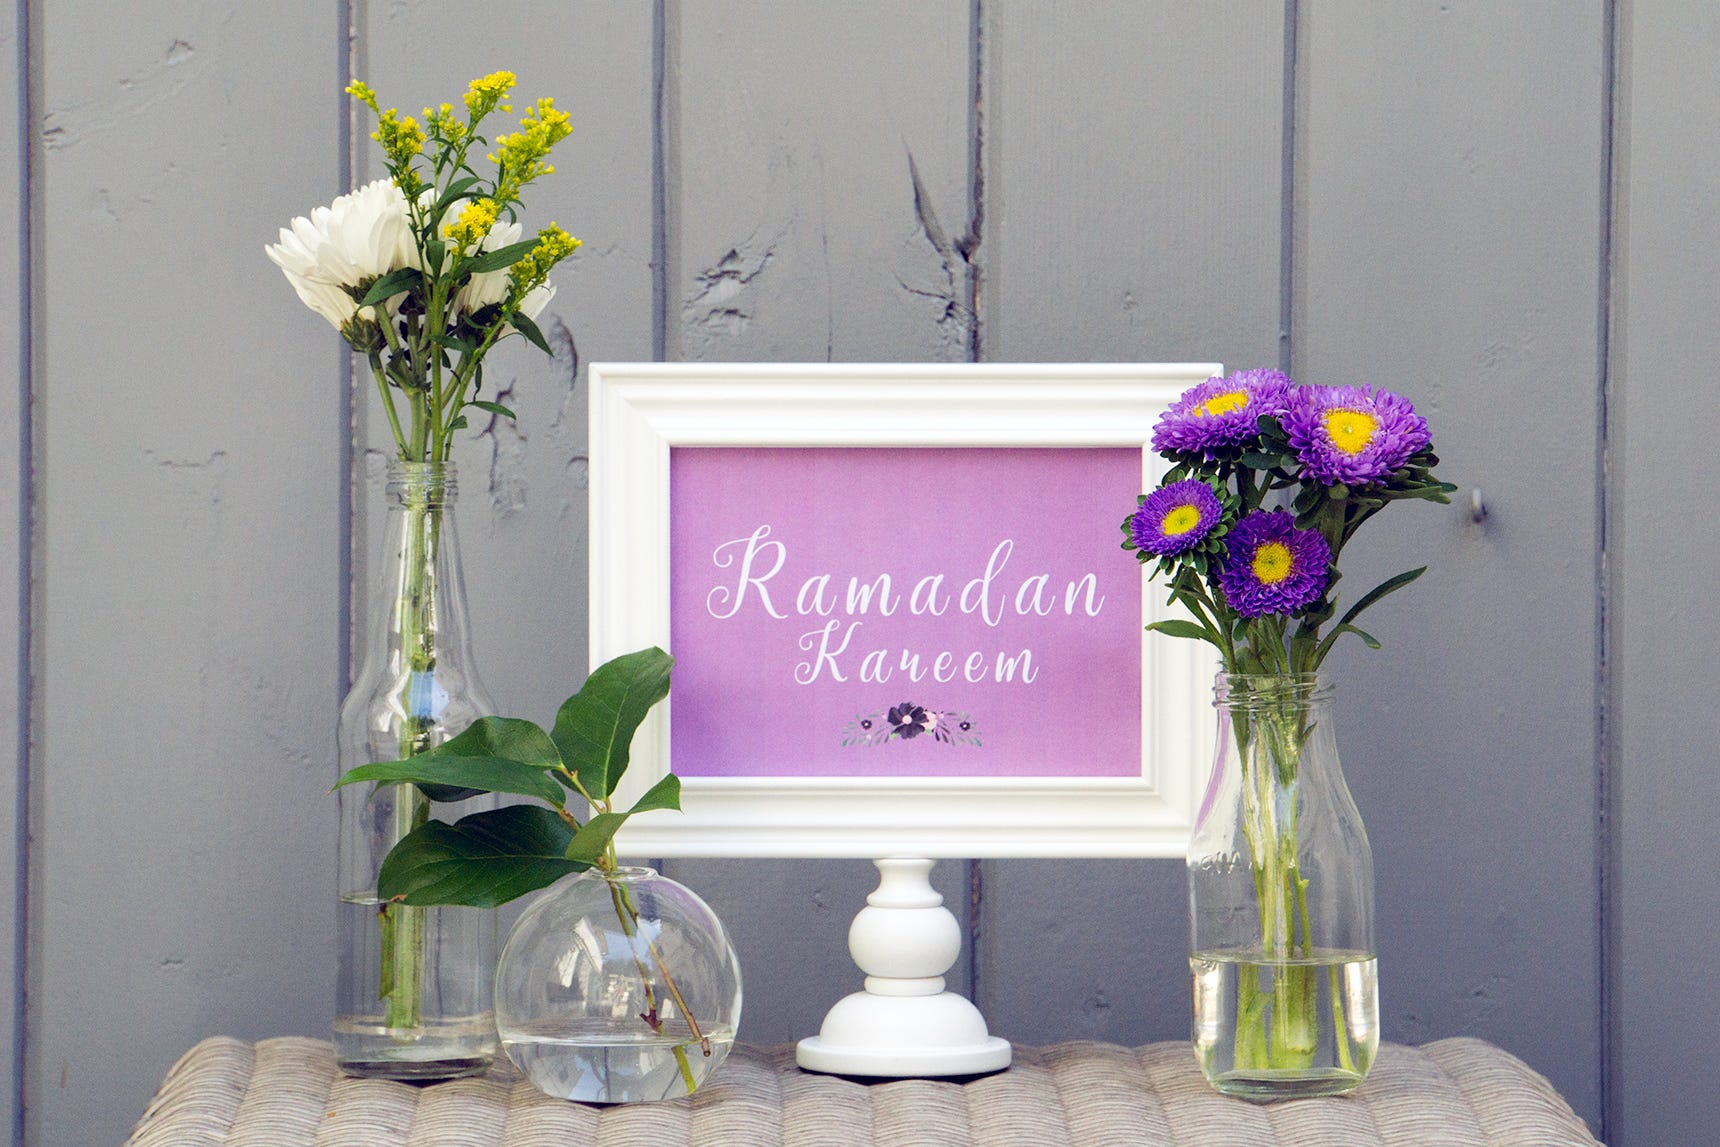 How To Celebrate Ramadan In 2018 Ideas From Pinterest